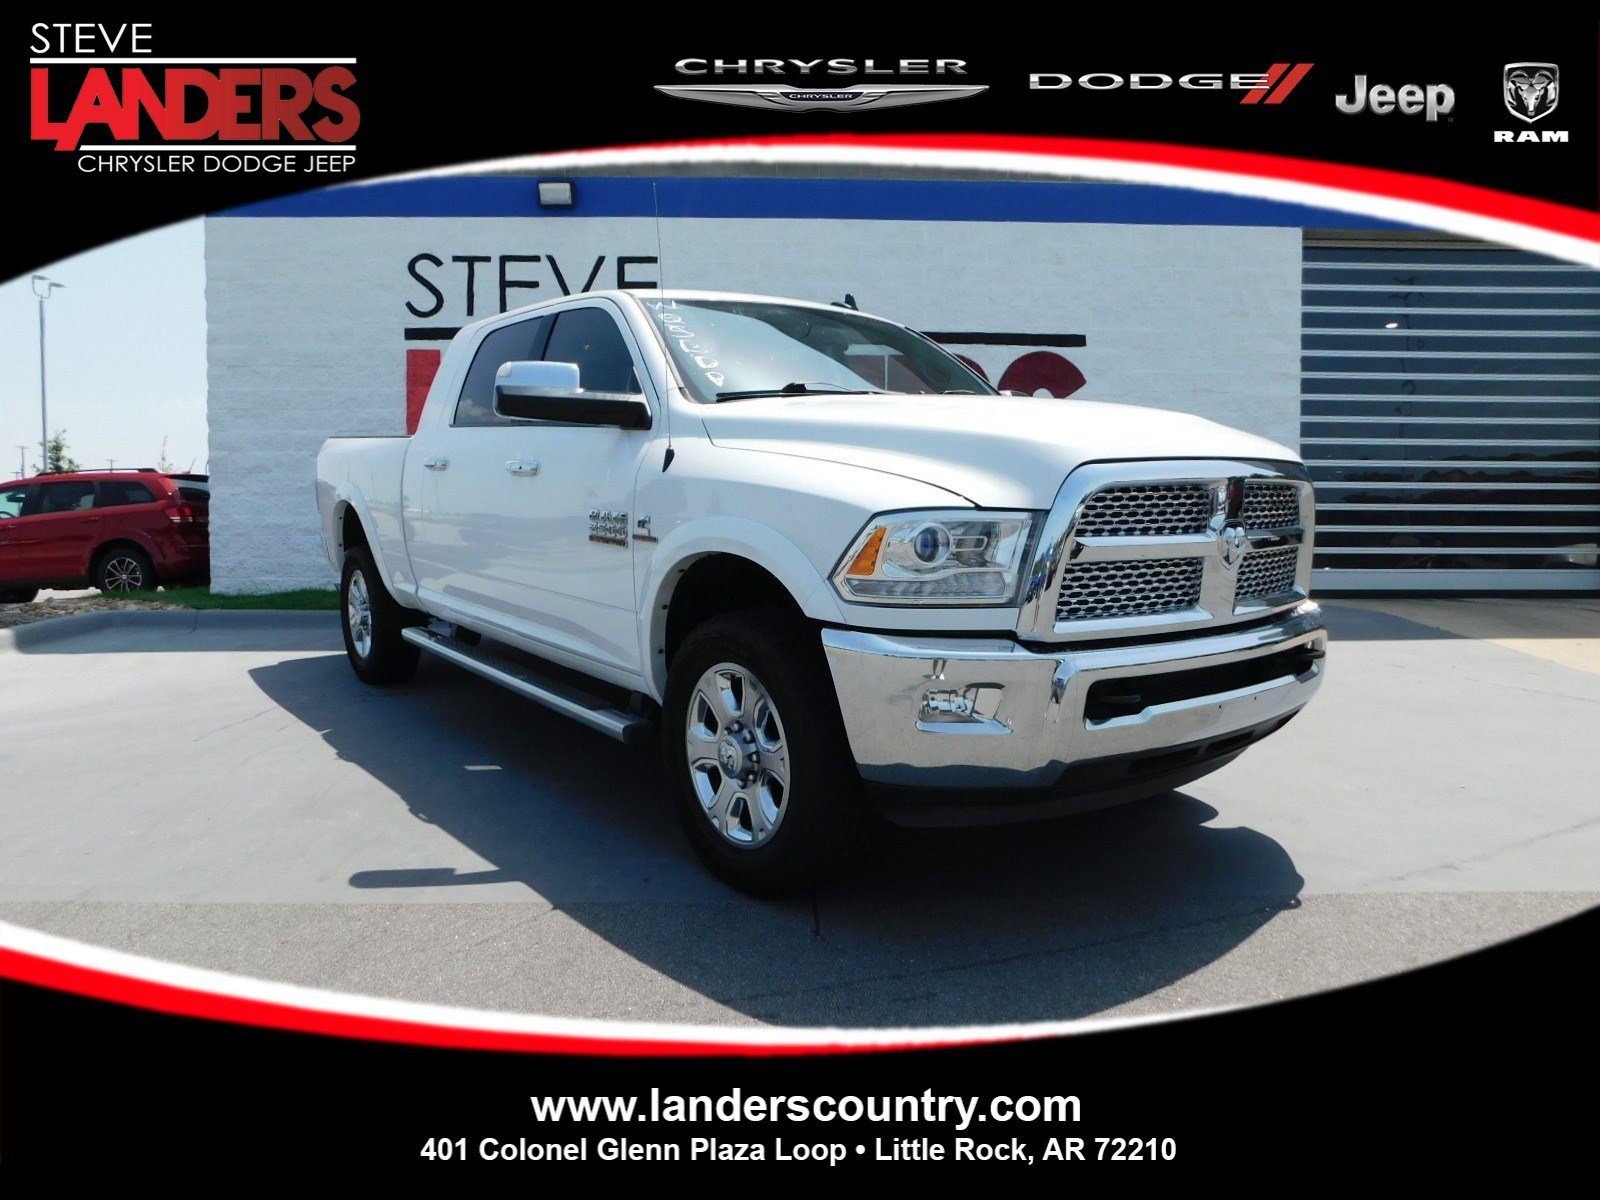 2014 Ram 2500 Laramie Owners Manual Online User Dodge 1500 Longhorn Lifted Pre Owned Crew Cab Pickup In Little Rock Rh Landerscountry Com